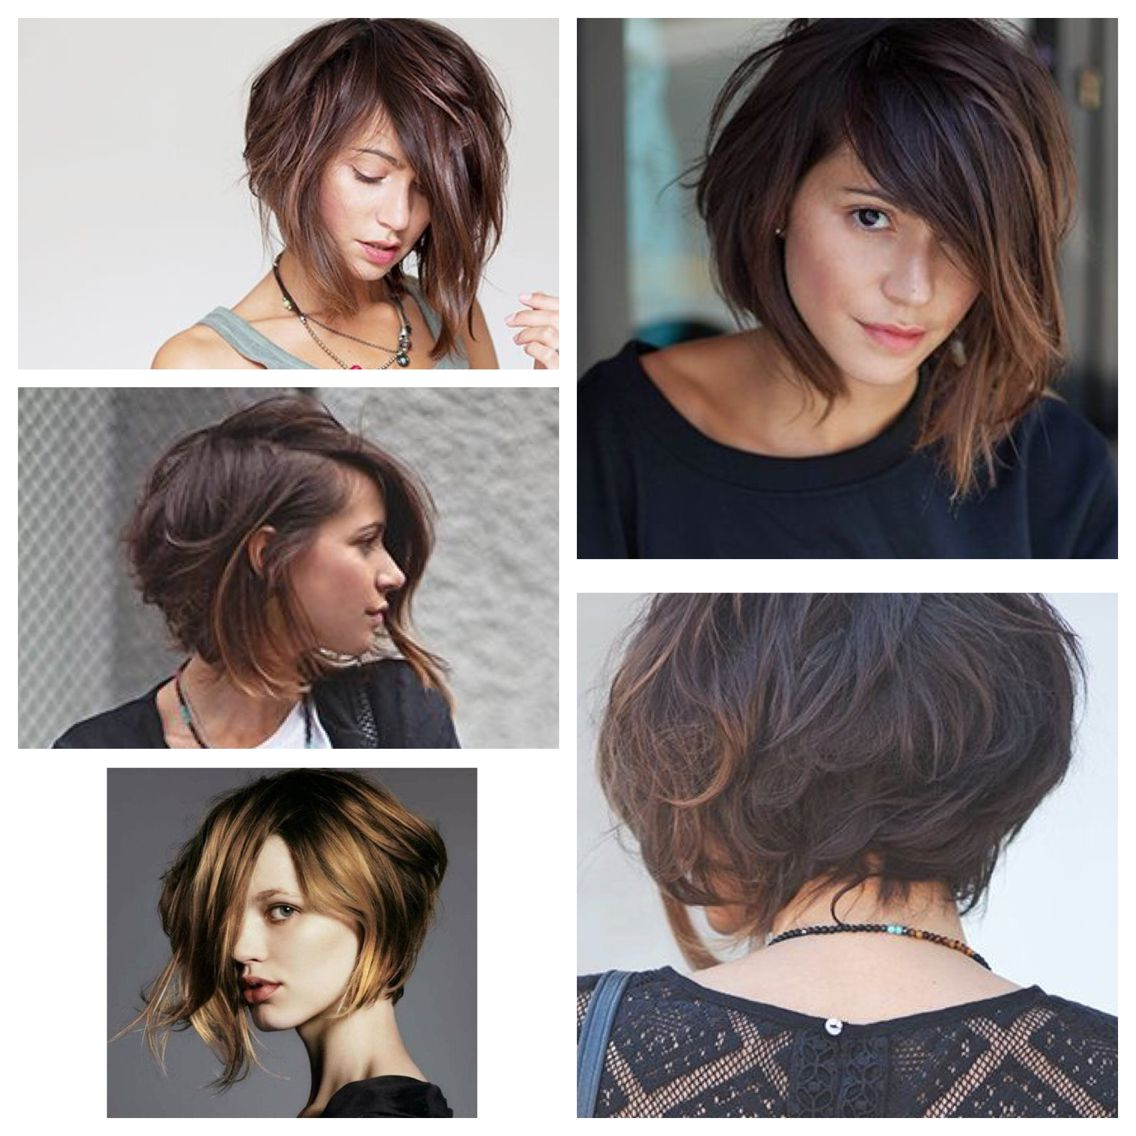 Ideias De Cabelo, Cabelo Curto With Most Current Asymmetrical Feathered Bangs Hairstyles With Short Hair (View 2 of 20)